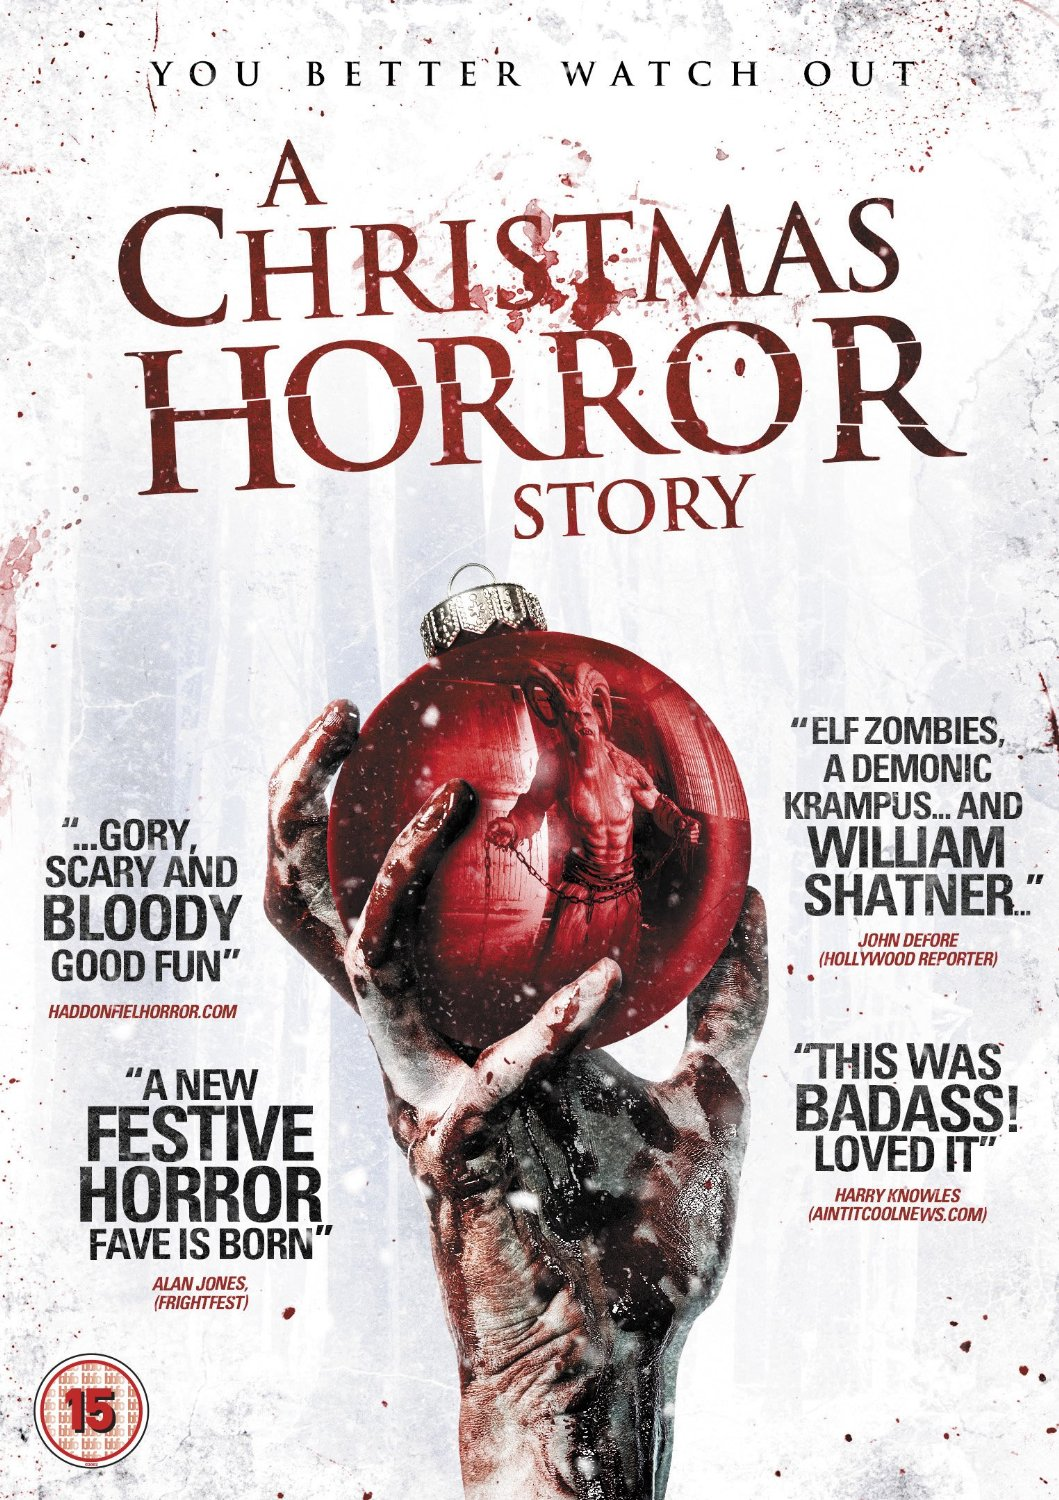 A Christmas Horror Story Artwork